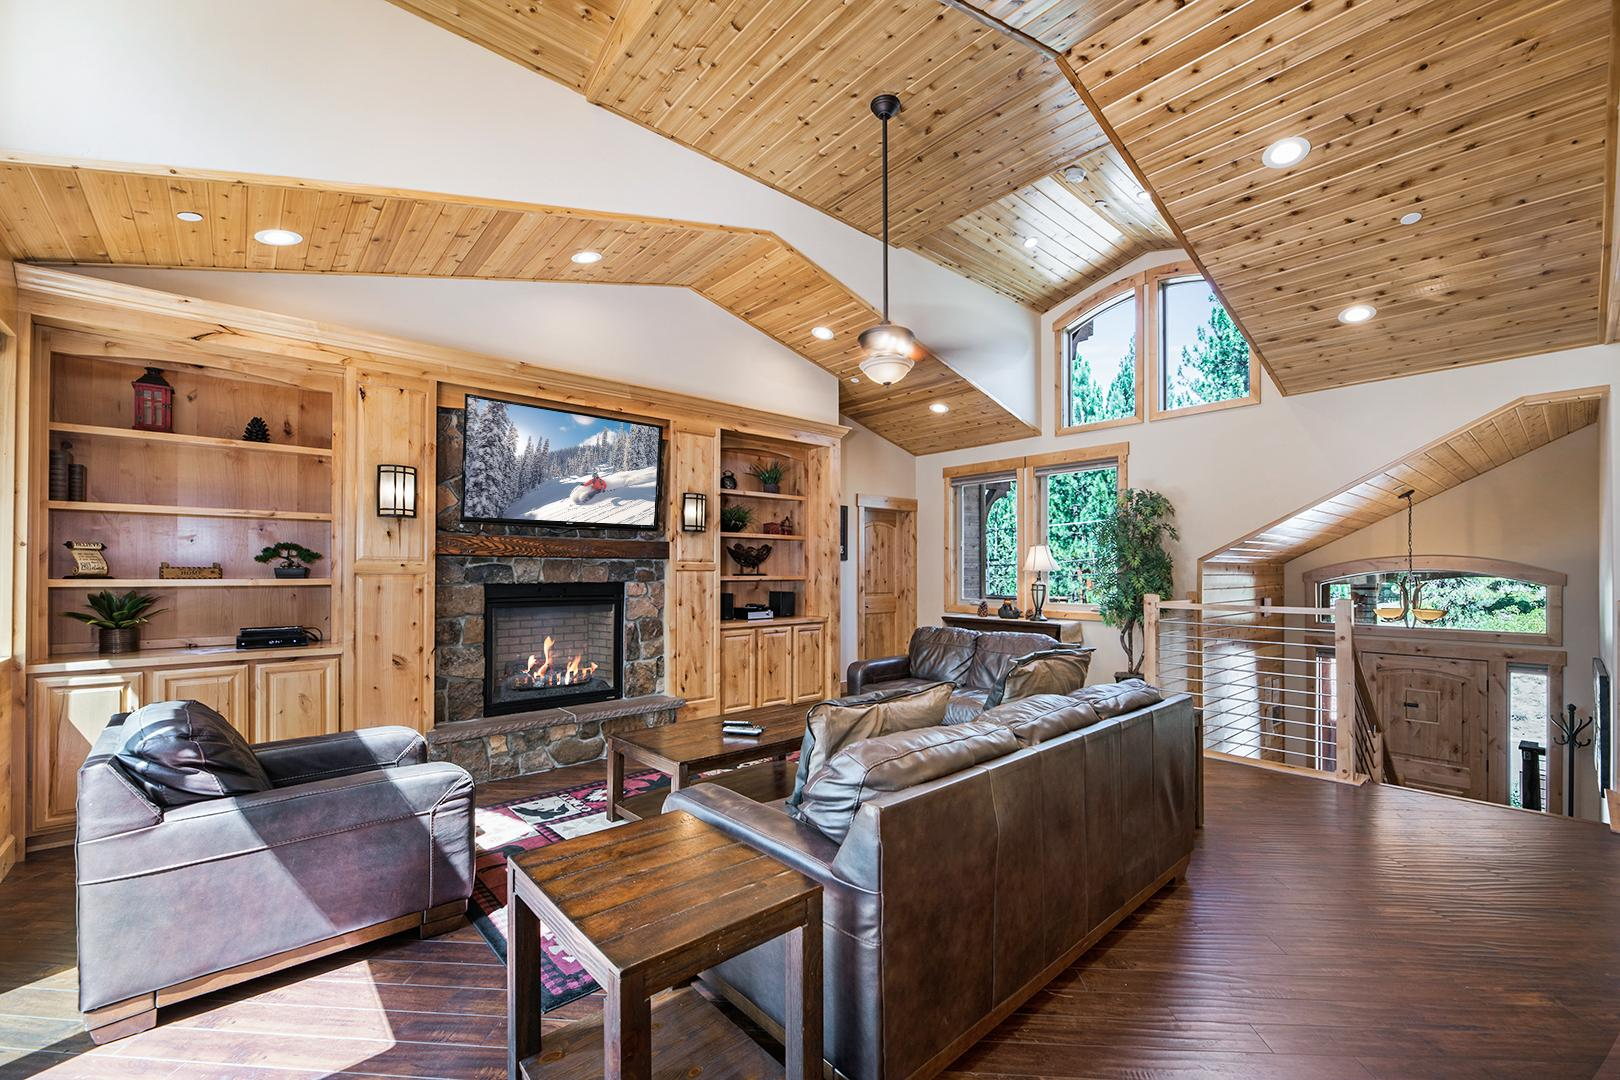 Stunning architectural features include vaulted ceilings, huge windows, and tasteful woodwork.